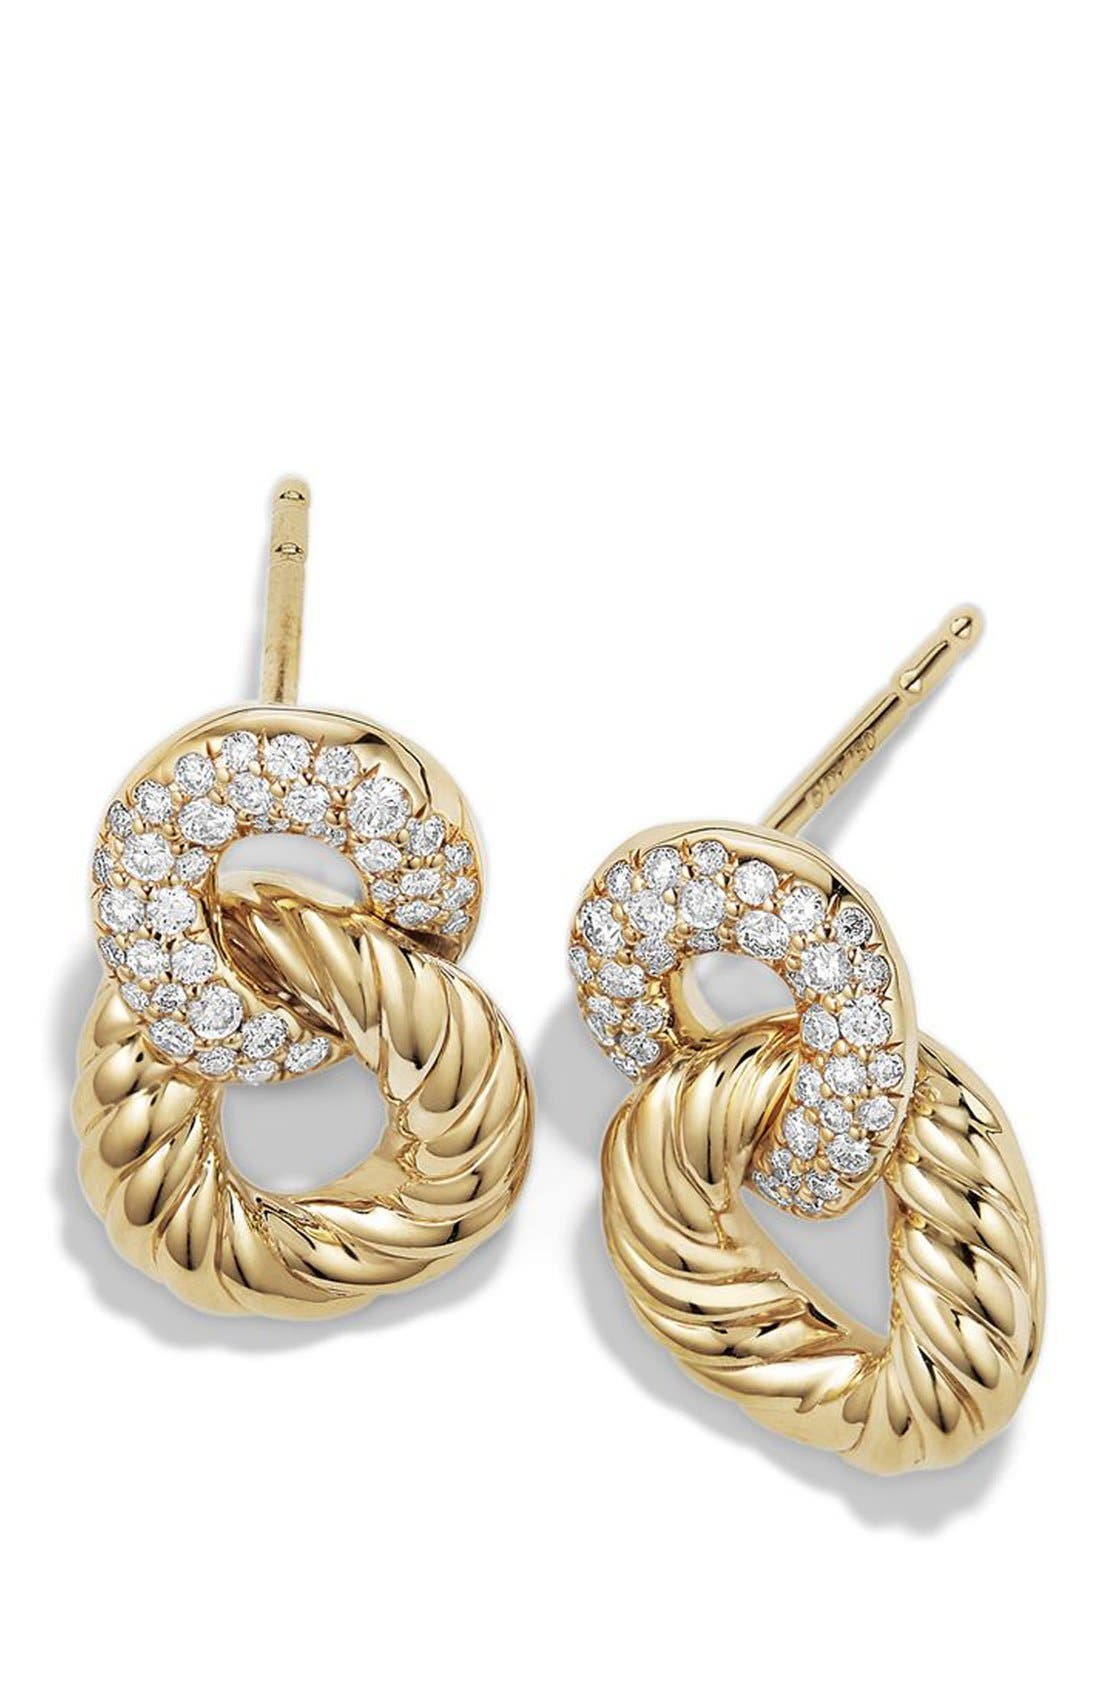 DAVID YURMAN,                             Extra-Small Curb Link Drop Earrings with Diamond in 18K Gold,                             Alternate thumbnail 3, color,                             YELLOW GOLD/ DIAMOND